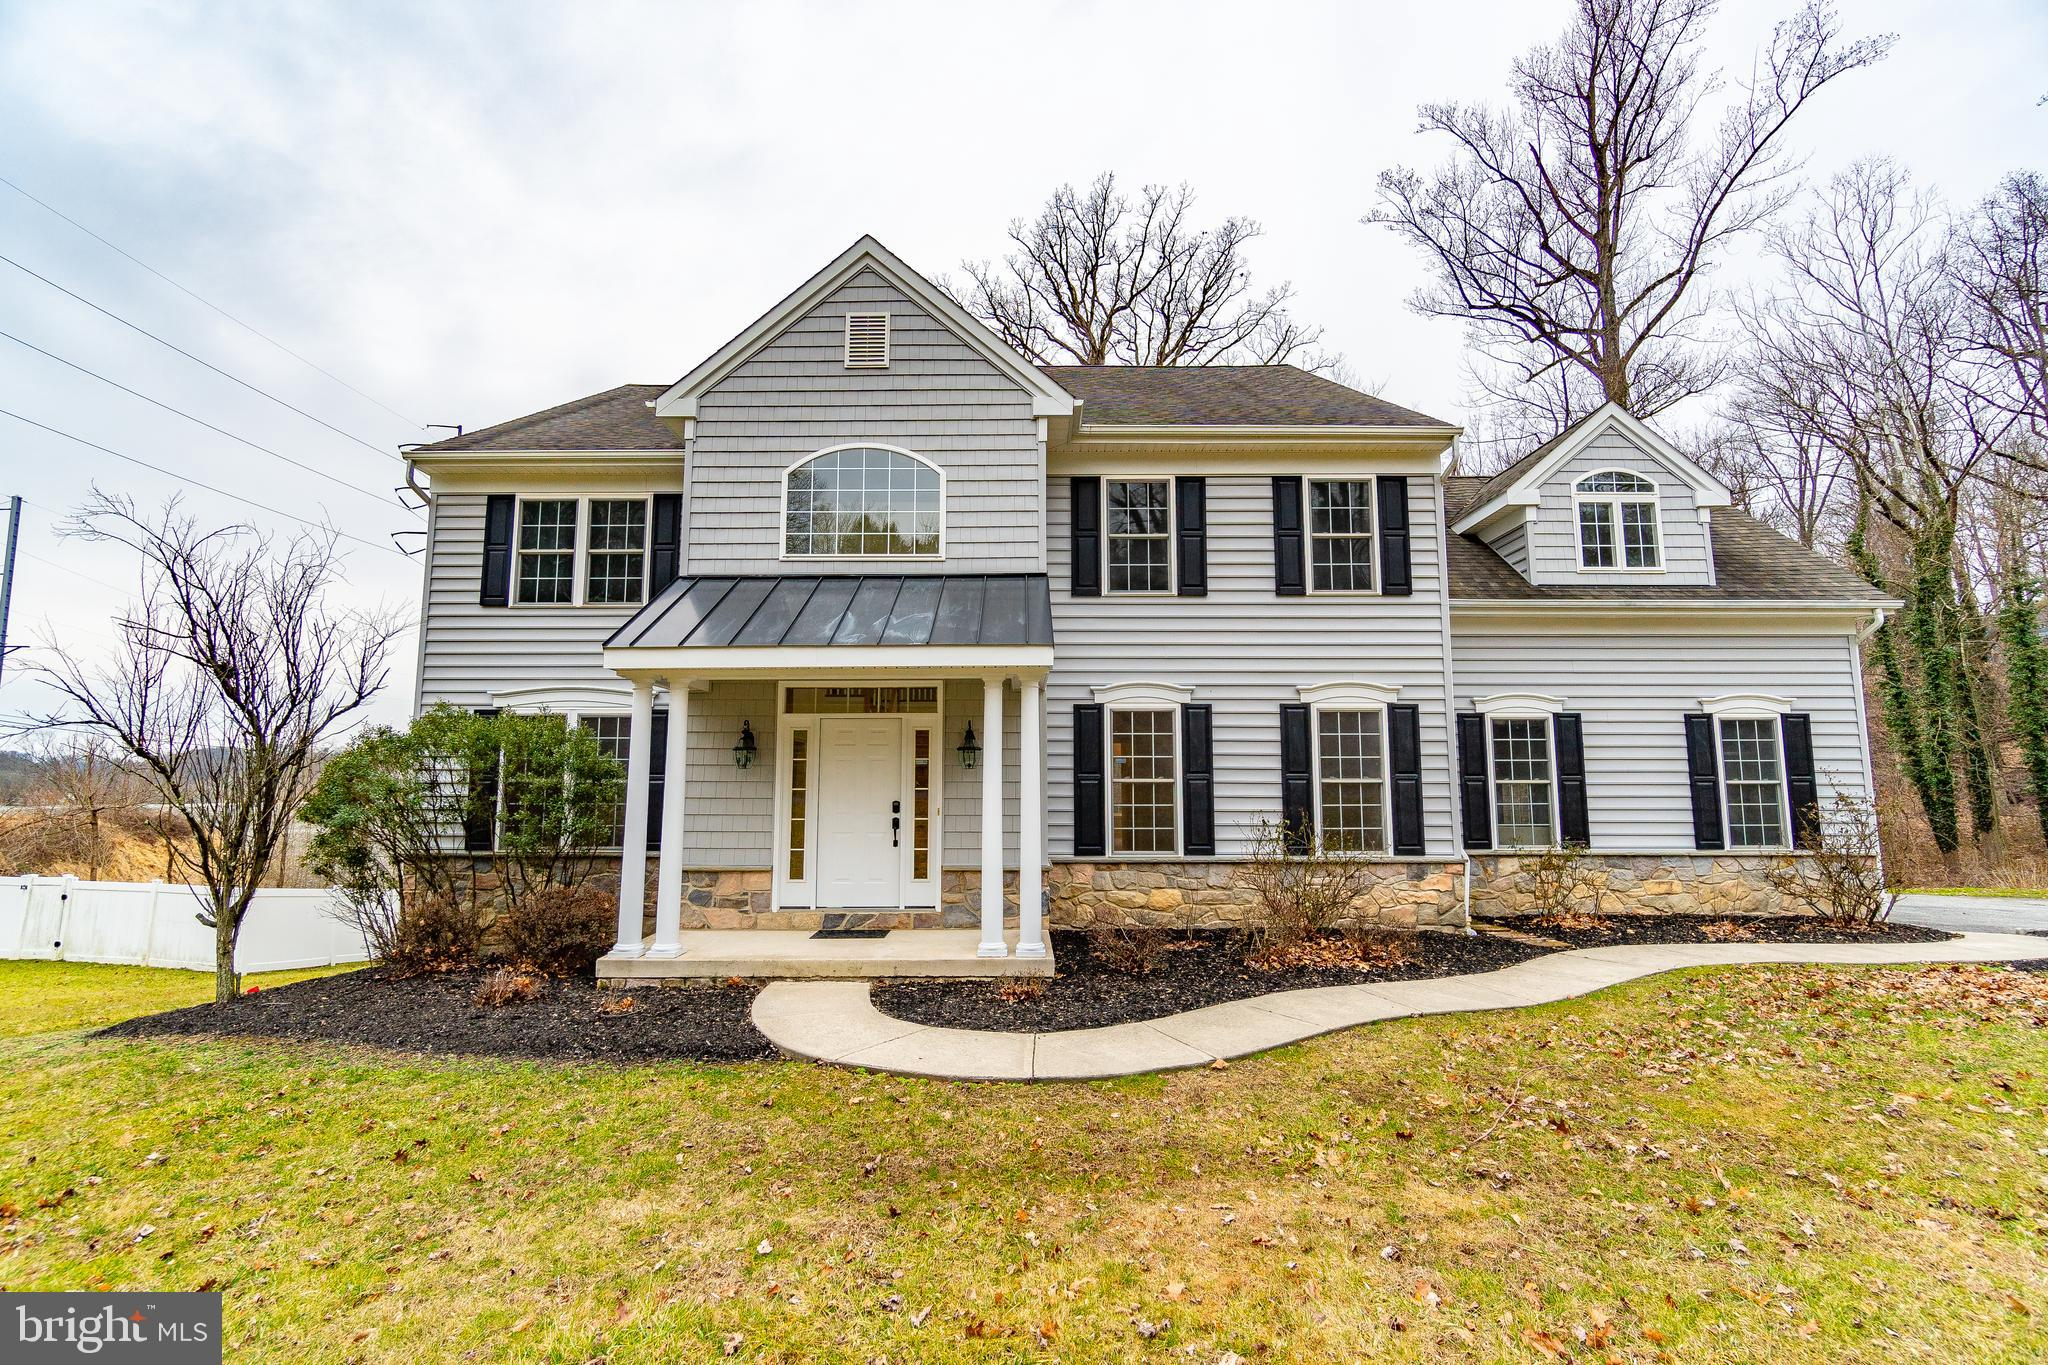 254 S PENNELL ROAD, MEDIA, PA 19063